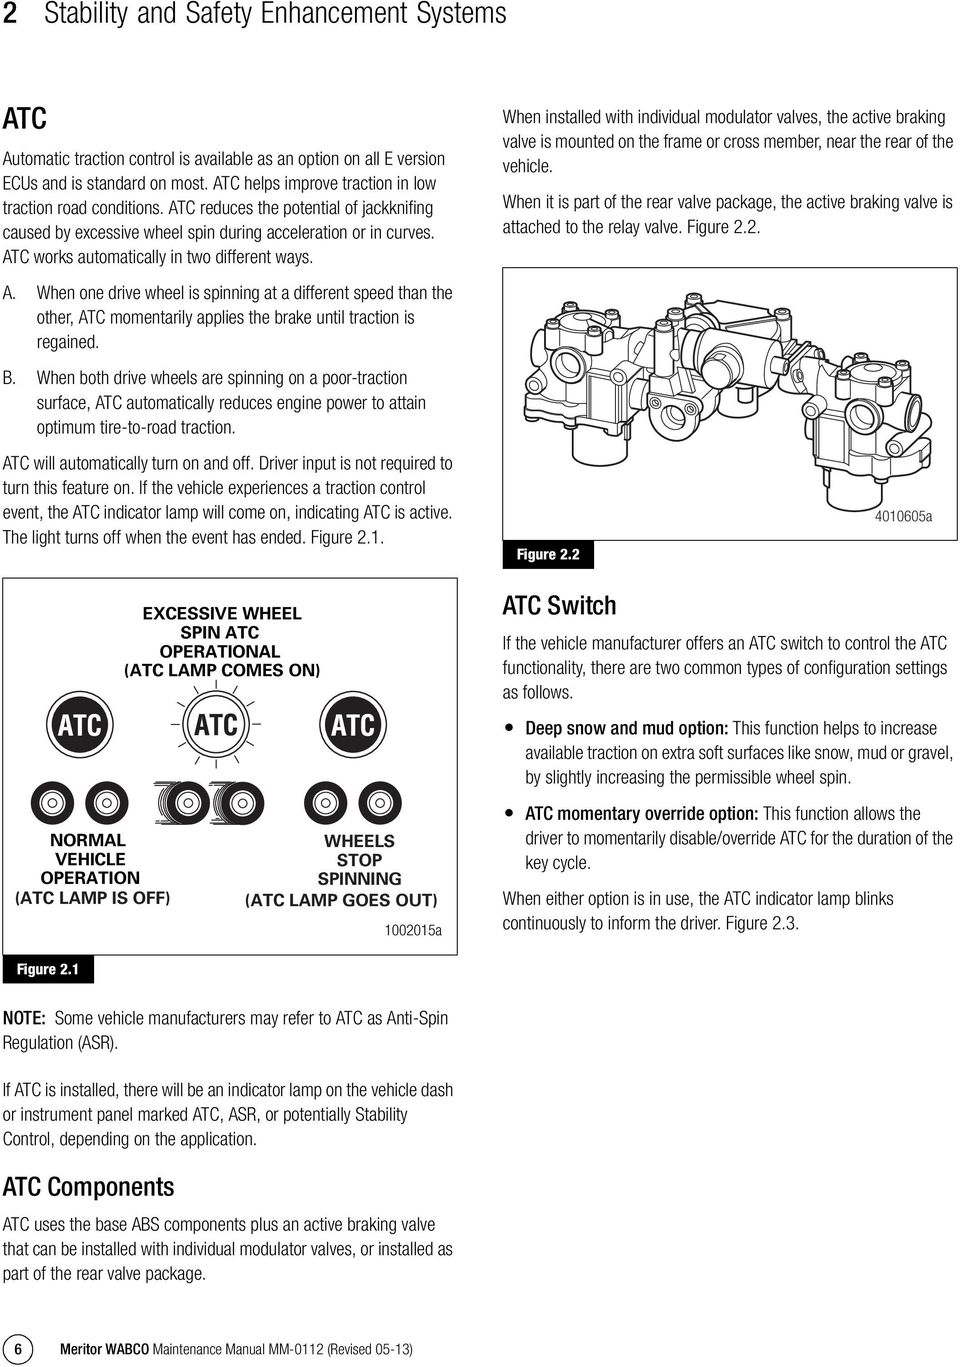 Anti-Lock Braking System (ABS) and Electronic Stability